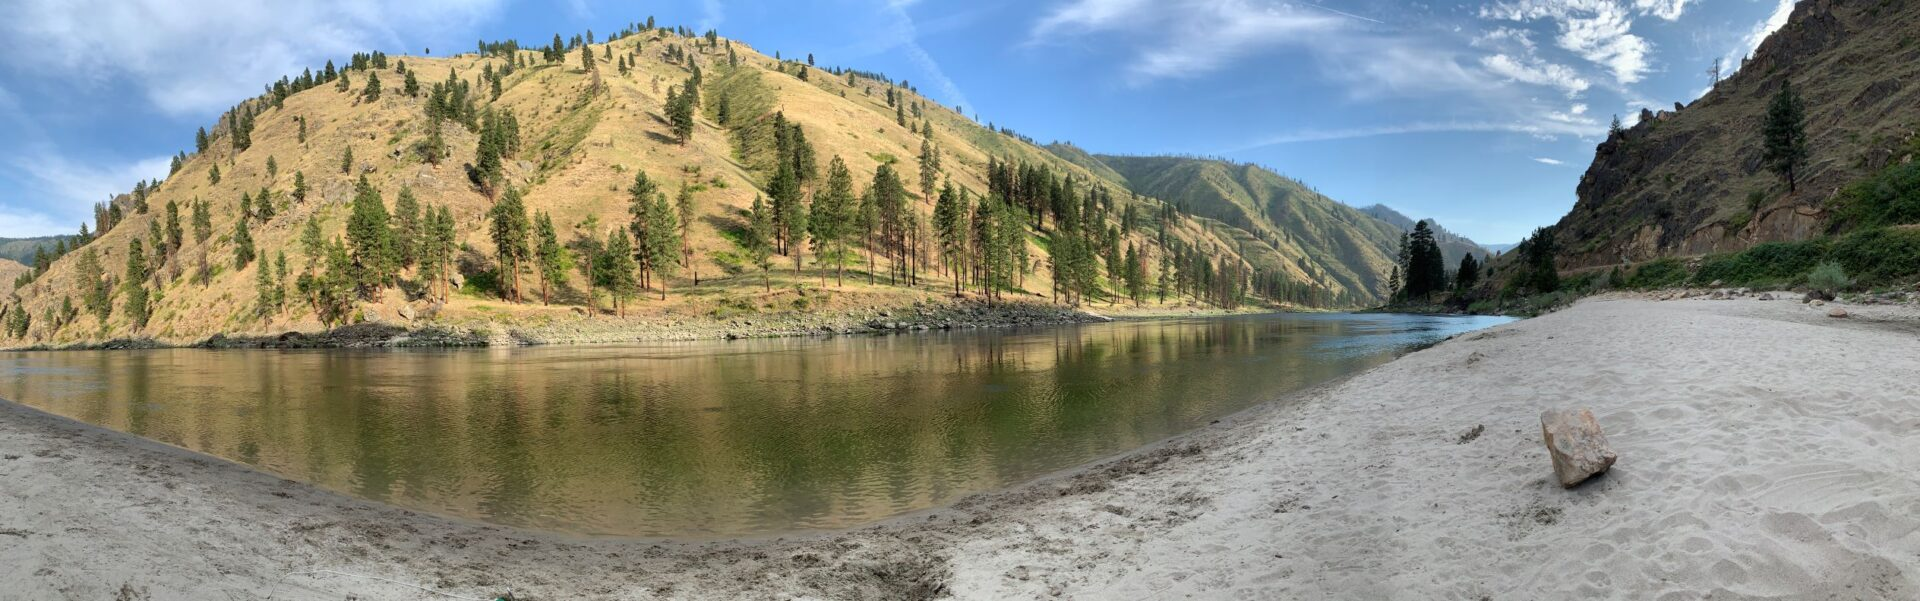 Sandy beach along the Snake River in Idaho. Rugged, hilly, arid landscape, and flat water of a river eddy.